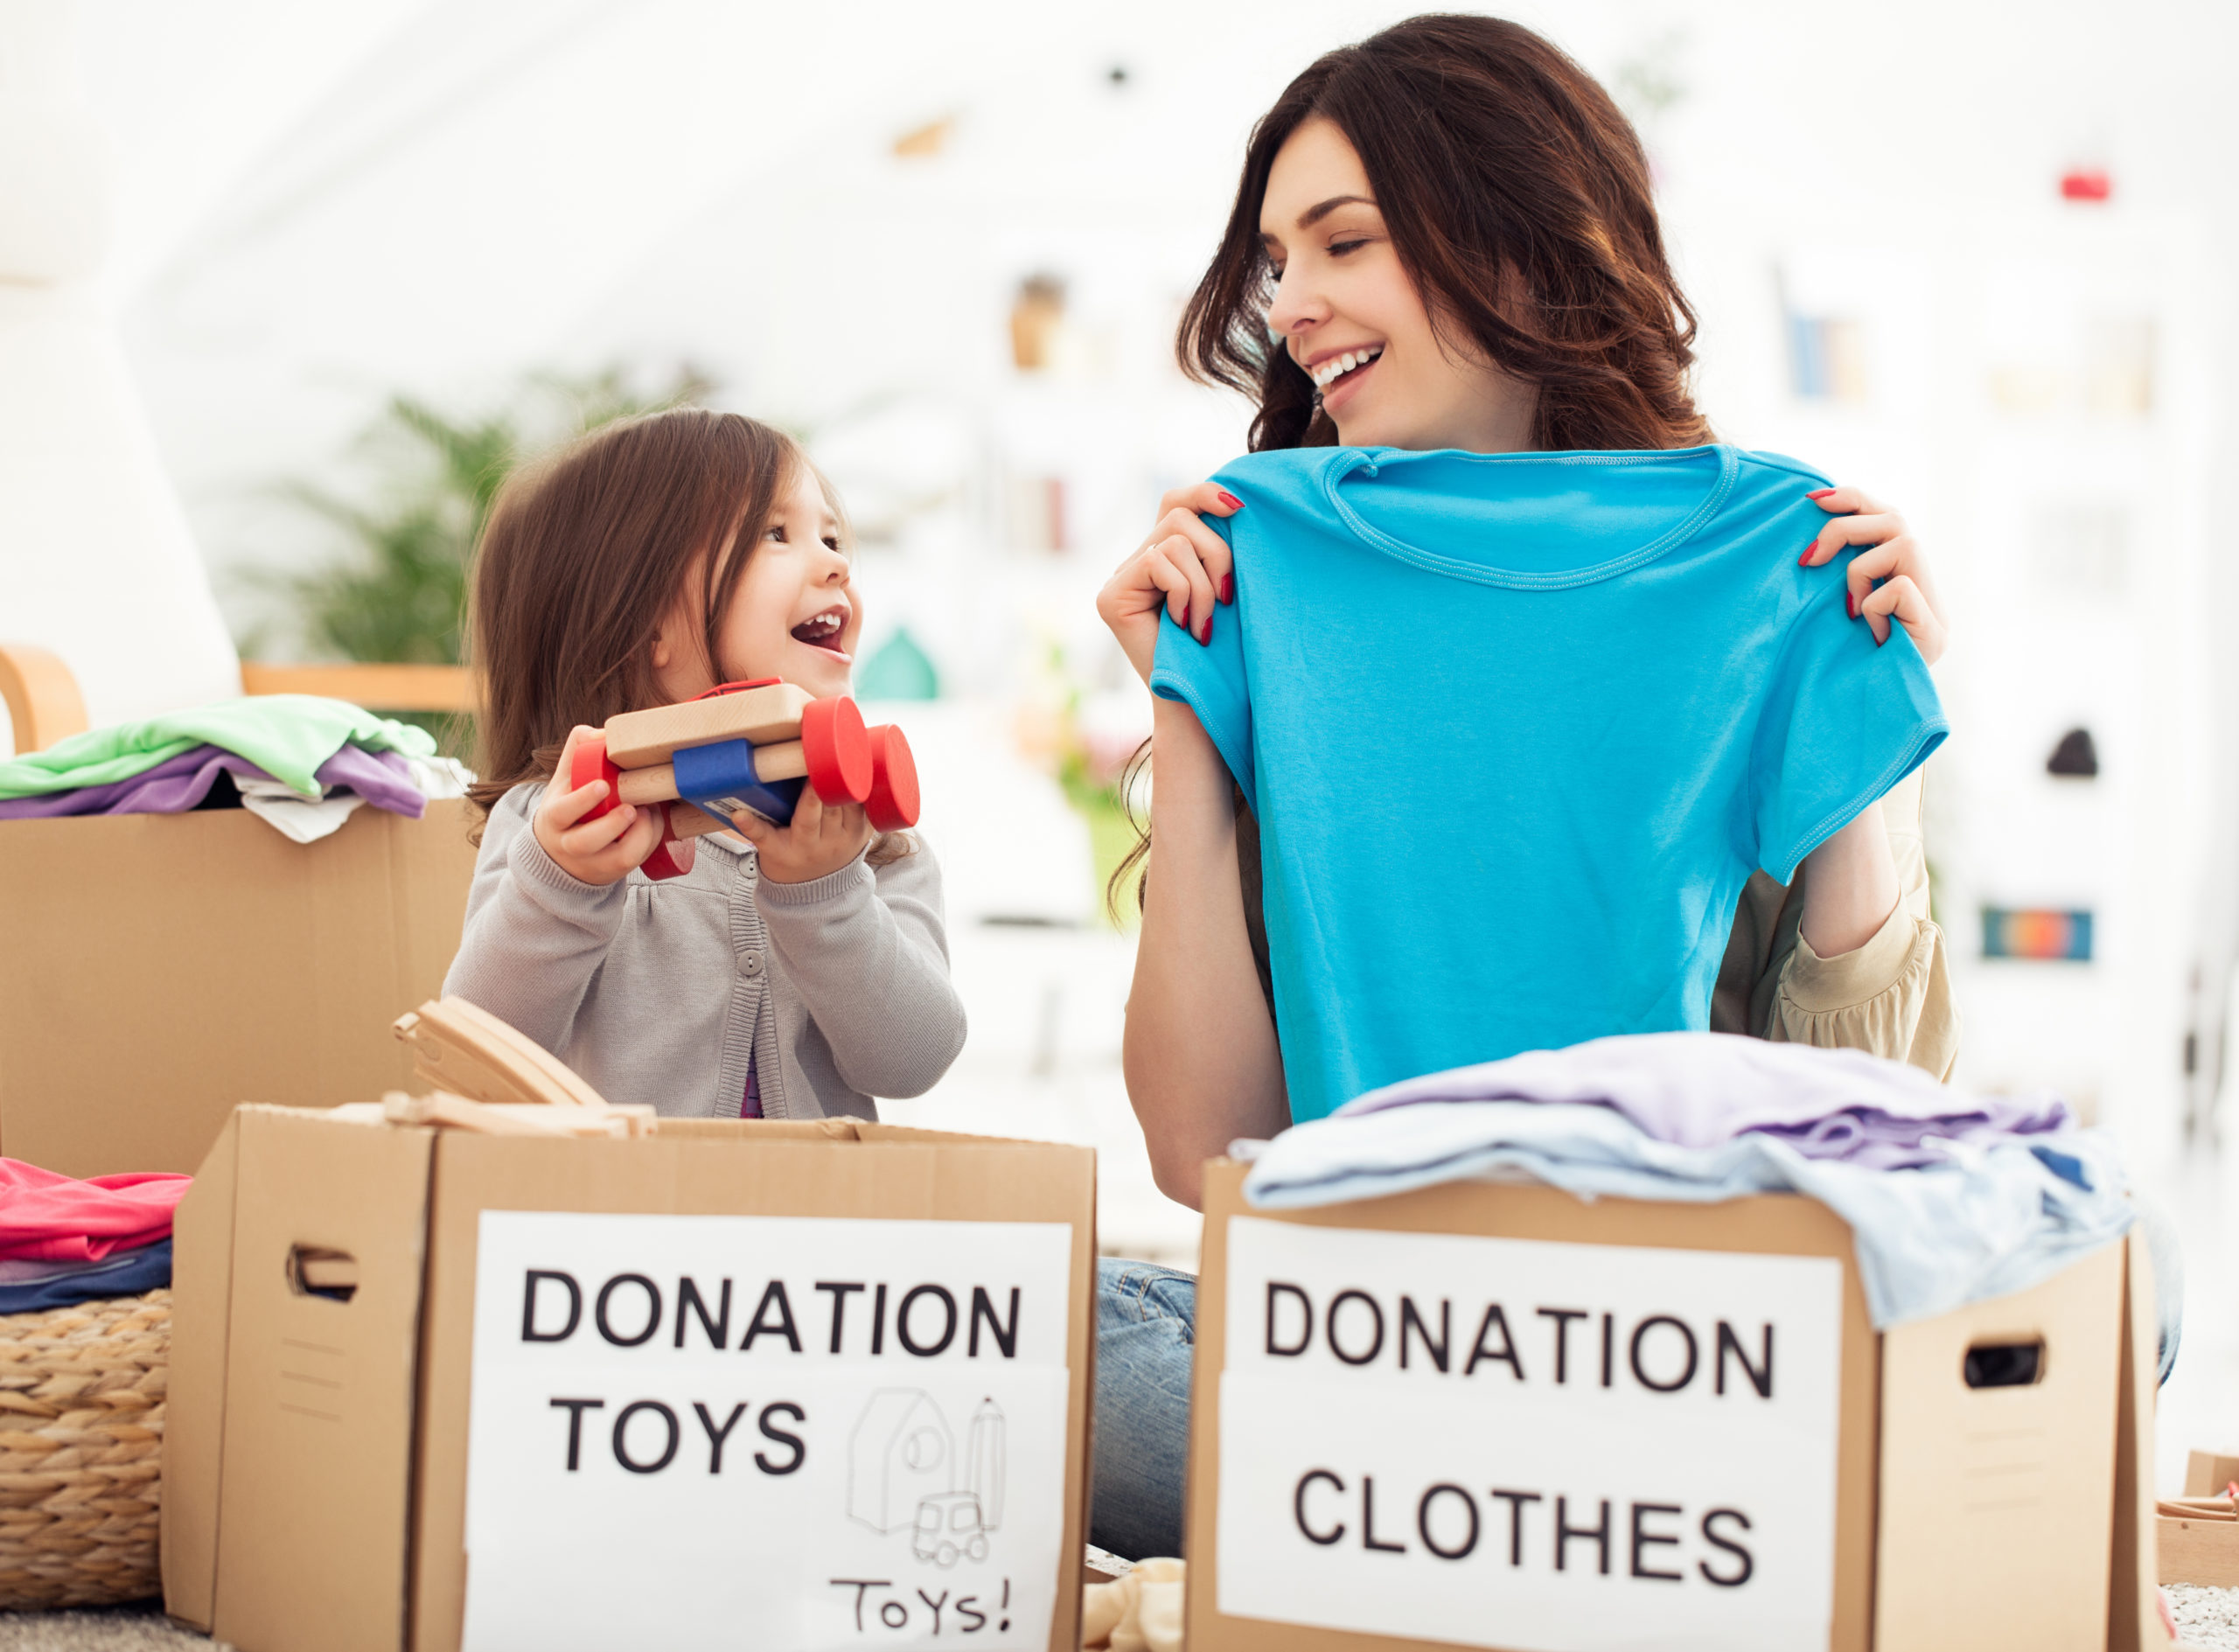 woman and child sorting donations